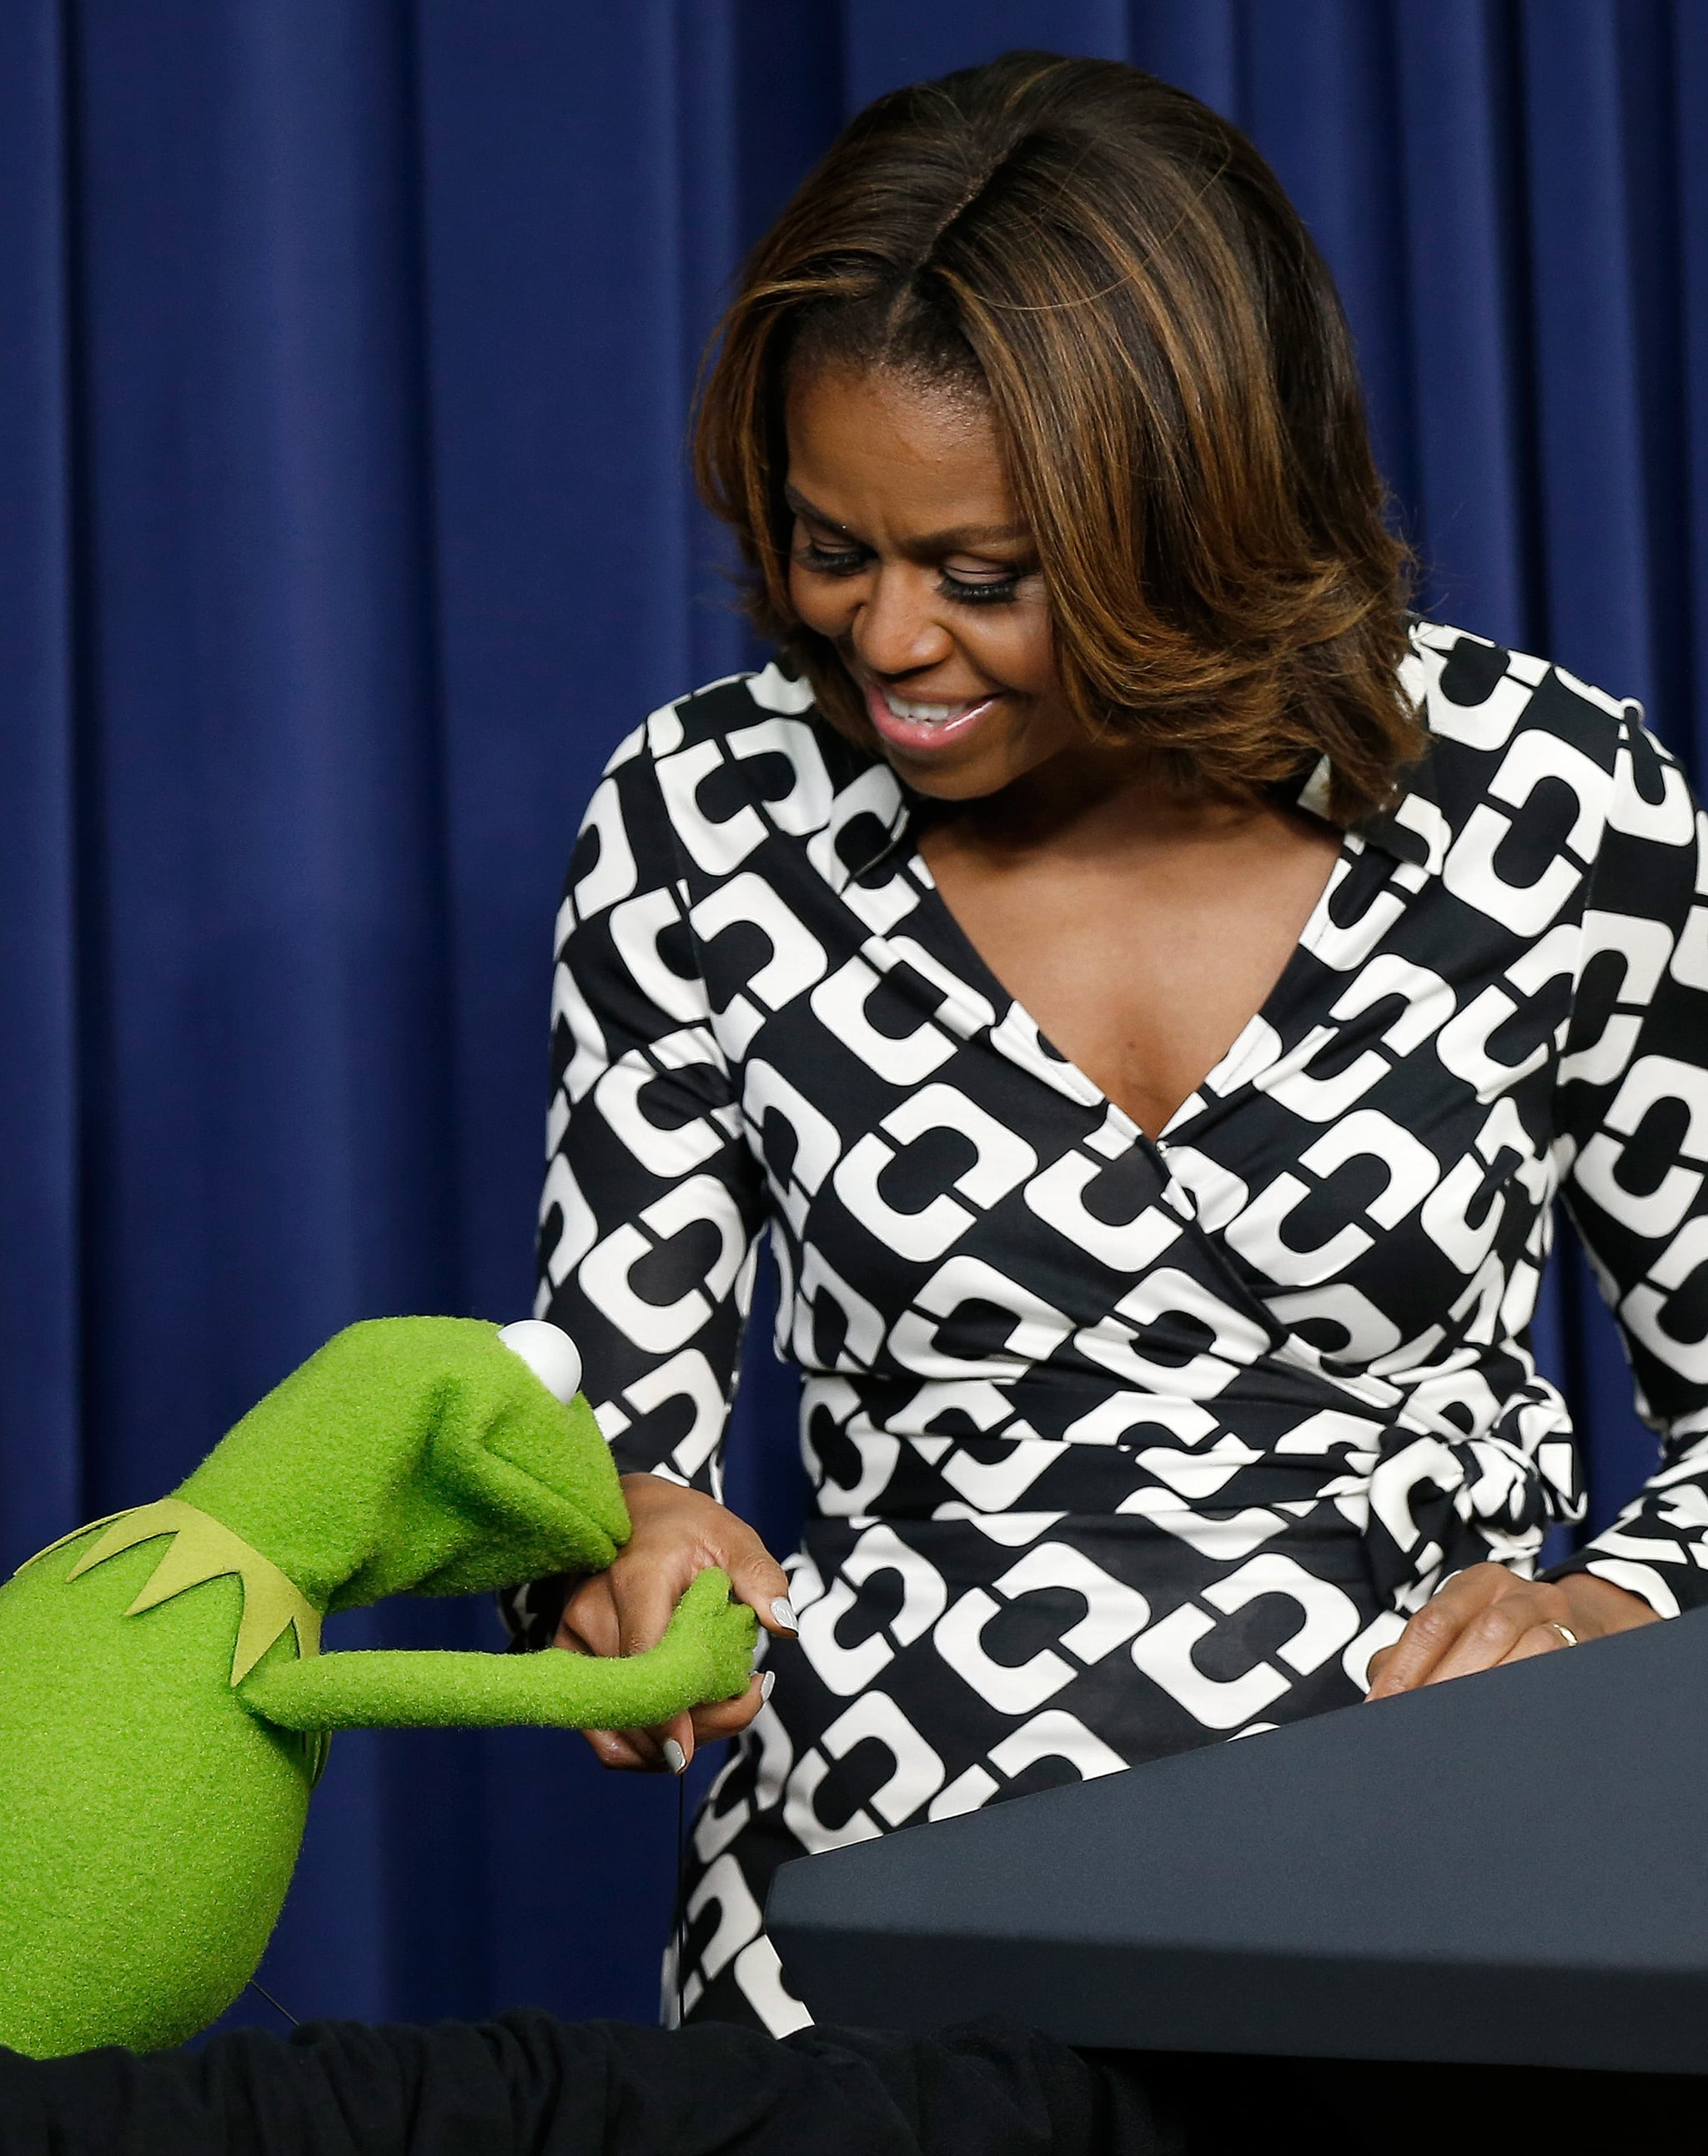 We hope Miss Piggy wasn't too jealous when Kermit the Frog spent some time with the DVF-clad first lady.